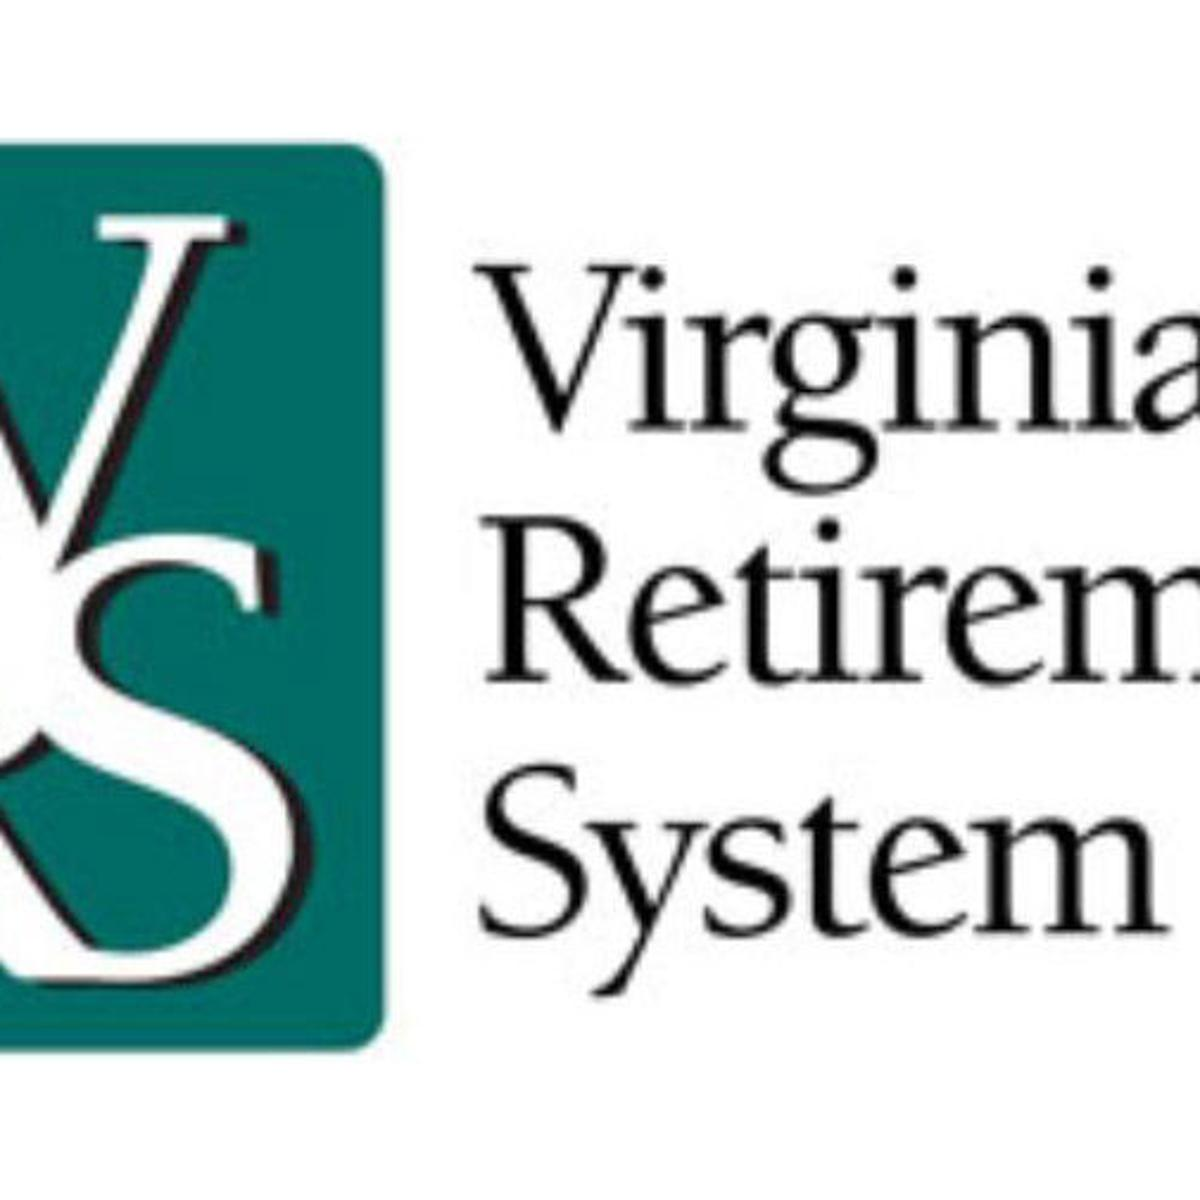 Virginia Retirement System gives nearly $6 75 million in incentive